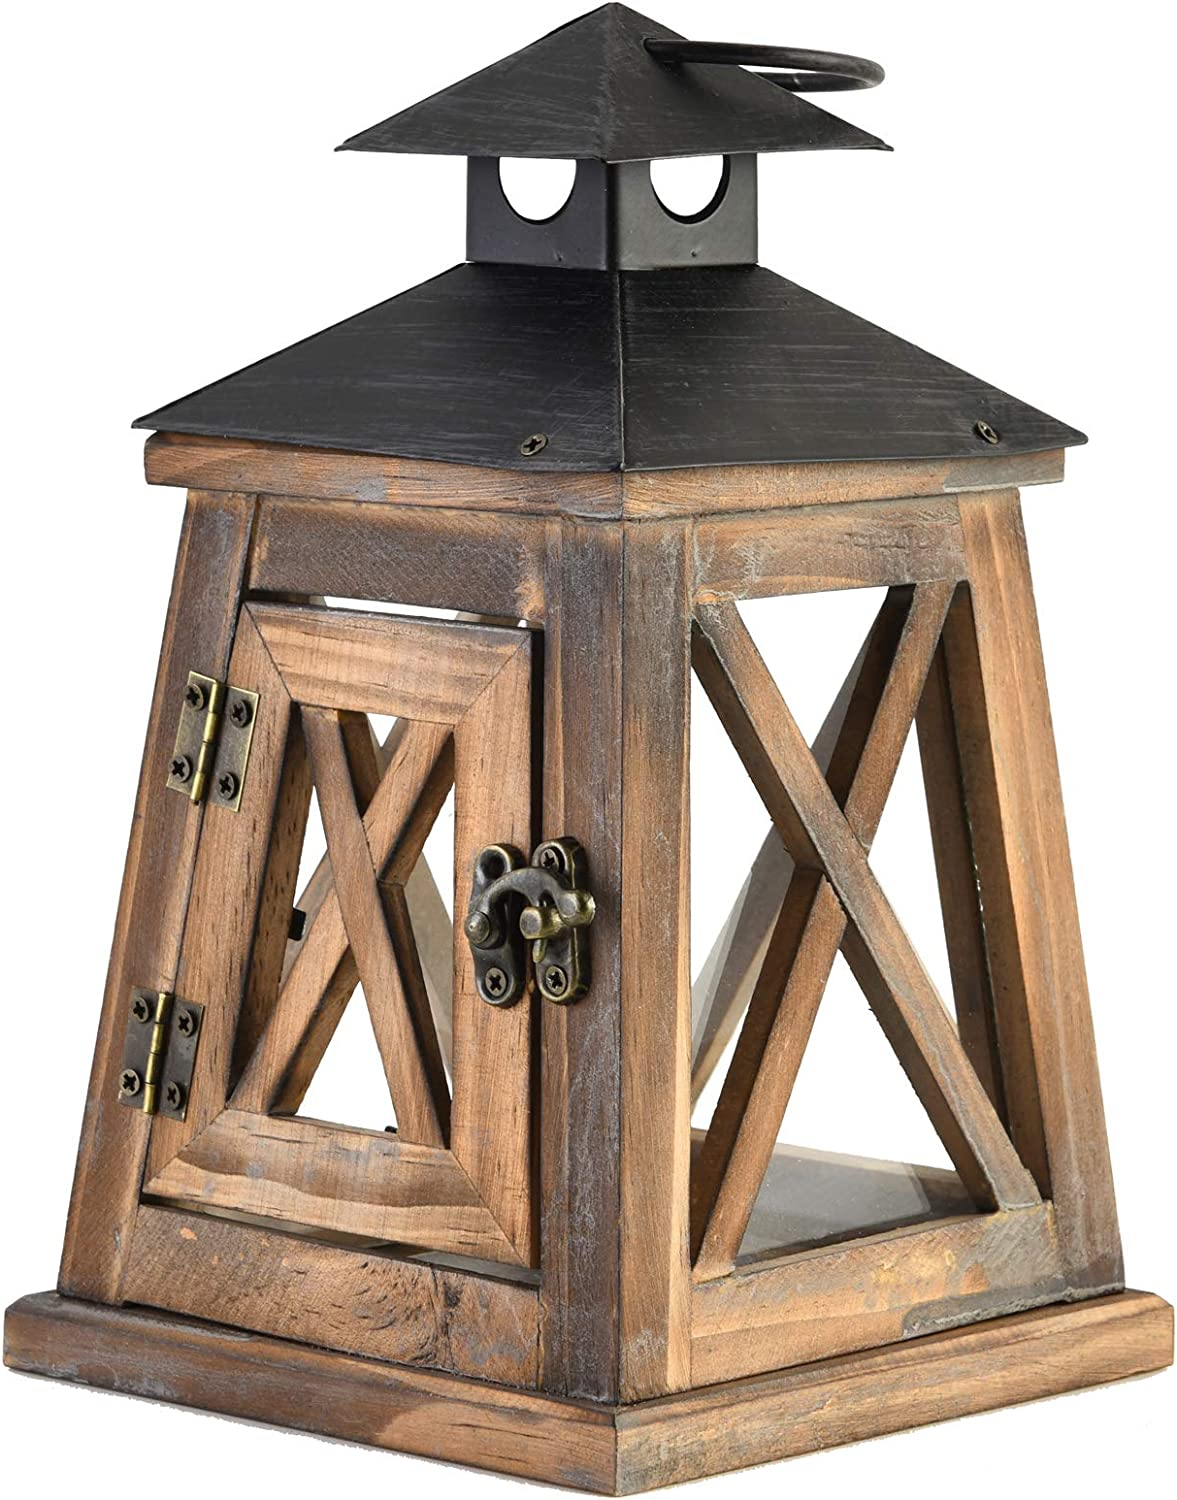 SUJUN Decorative Rustic Wooden Candle Lantern with Handle, Small, Brown, Perfectly for Wedding, Party, Home Décor